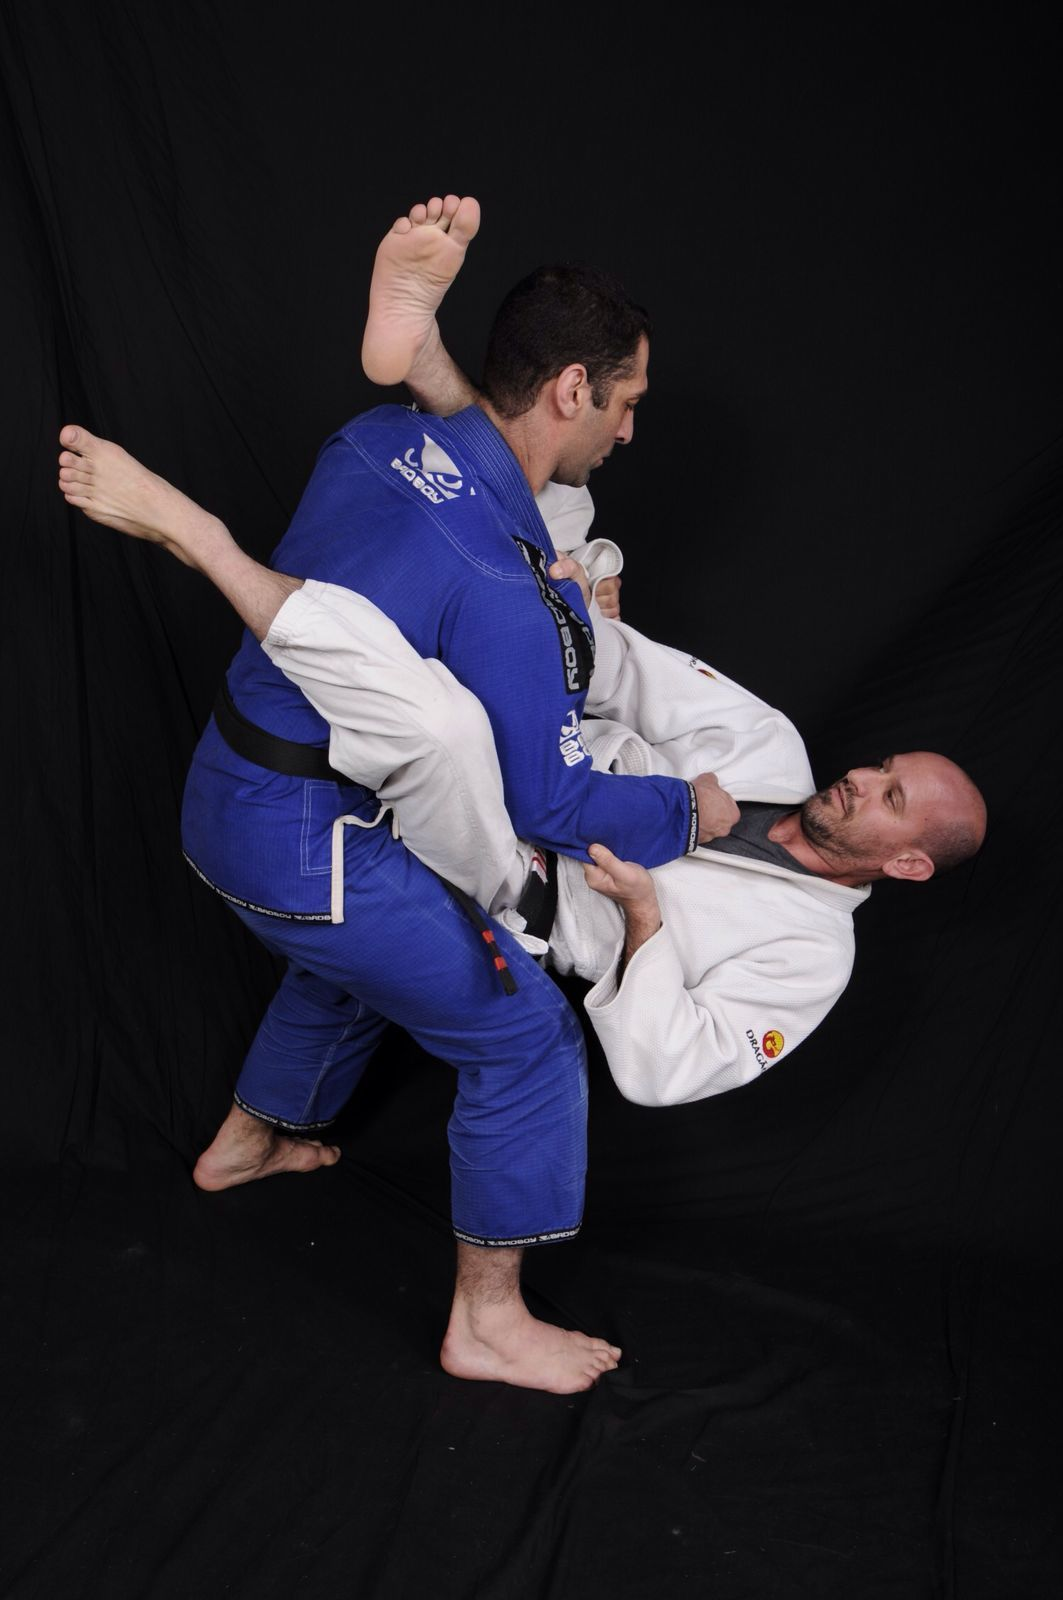 Hd Wallpaper Of Girl And Boy File Bjj Brazilian Jiujitsu 03 Jpg Wikimedia Commons